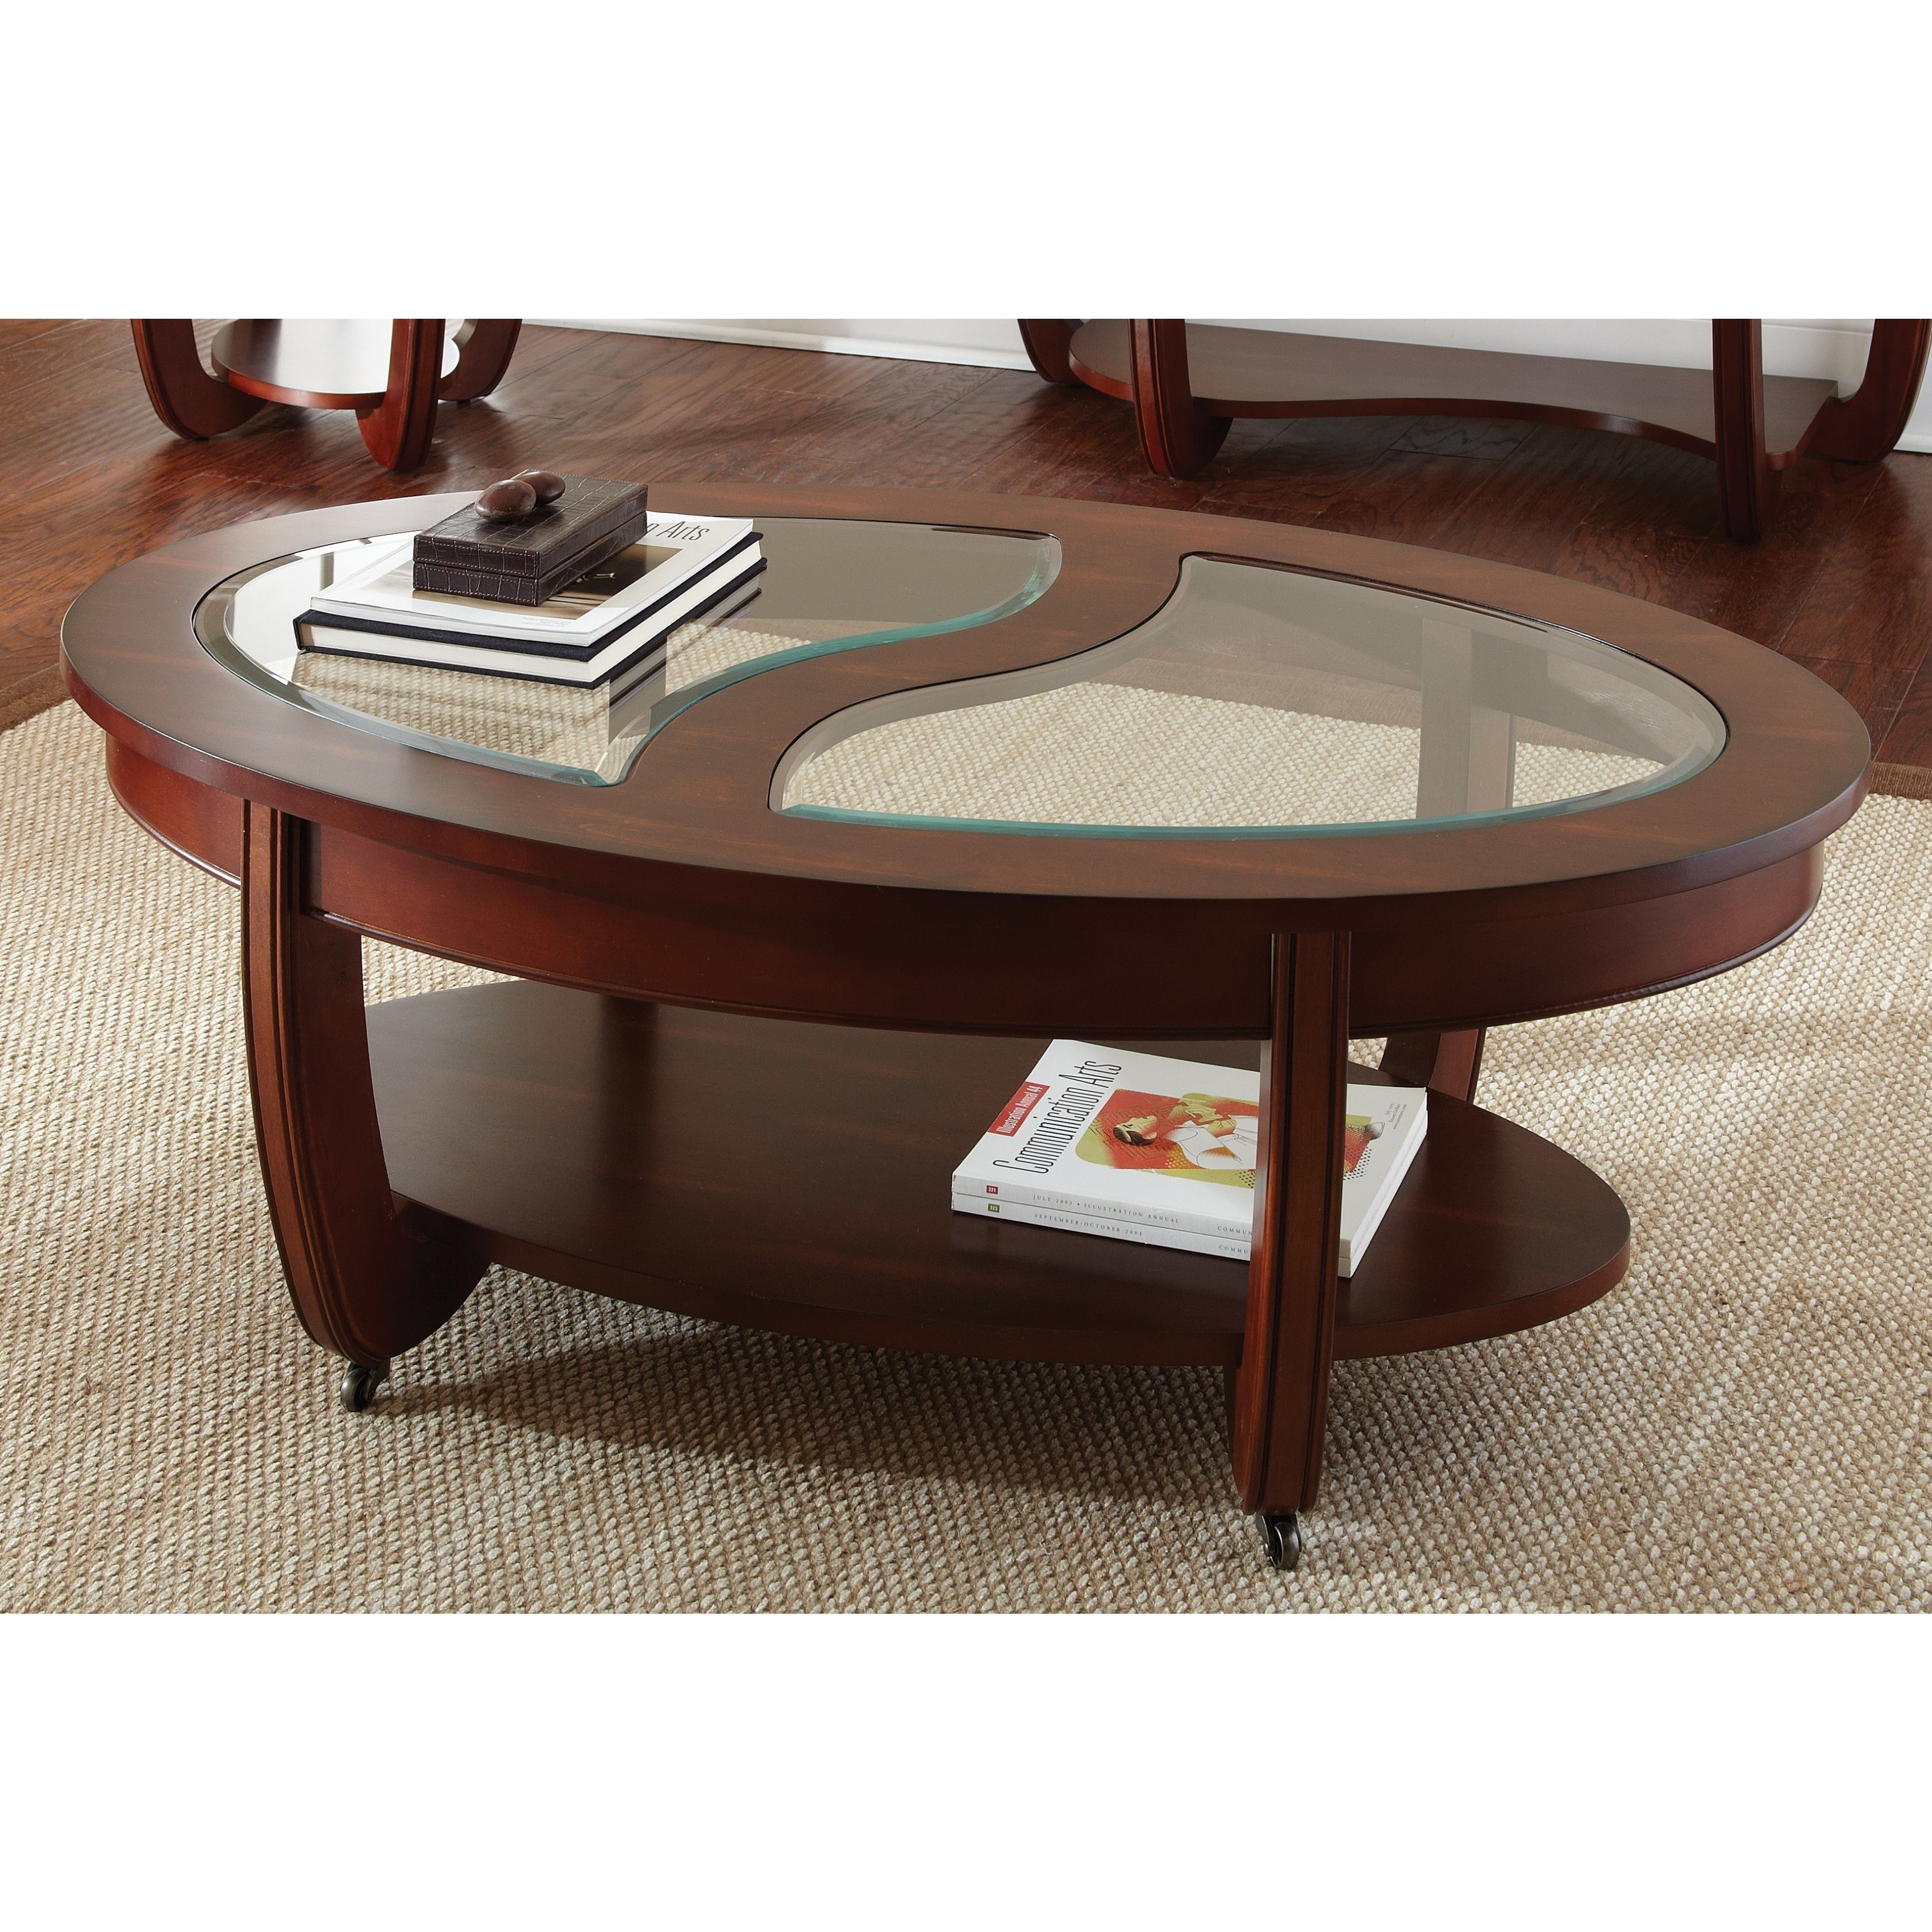 Our Best Living Room Furniture Deals Coffee Table Coffee Table With Casters Coffee Table Wood [ 3400 x 3400 Pixel ]